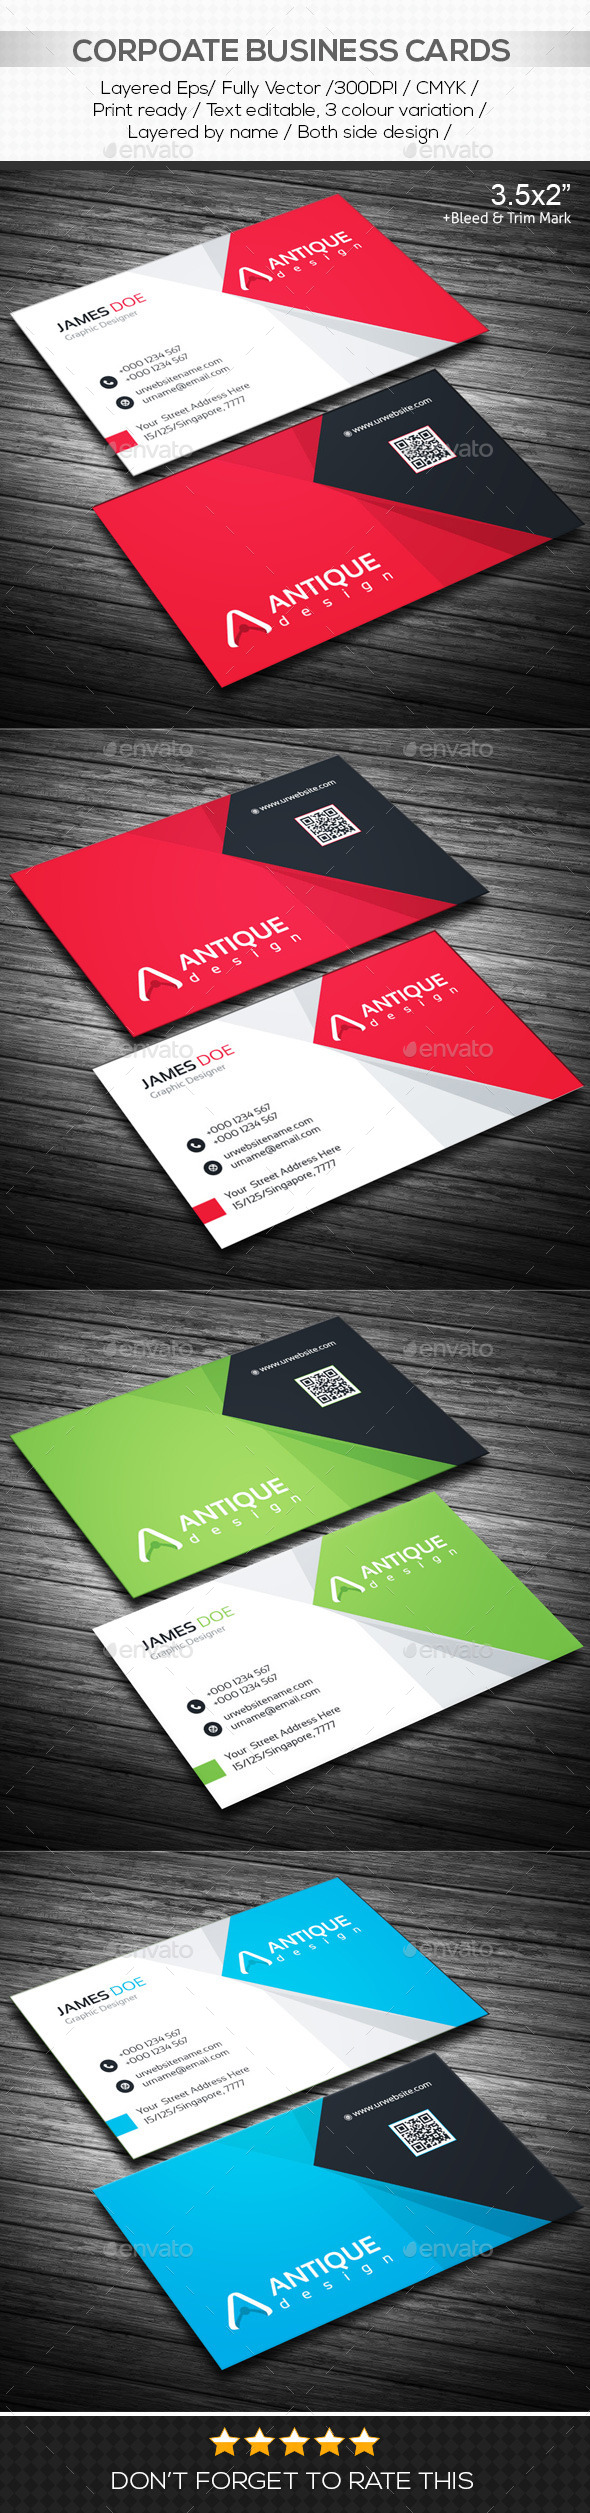 GraphicRiver Antique Design Corporate Business Cards 10630354